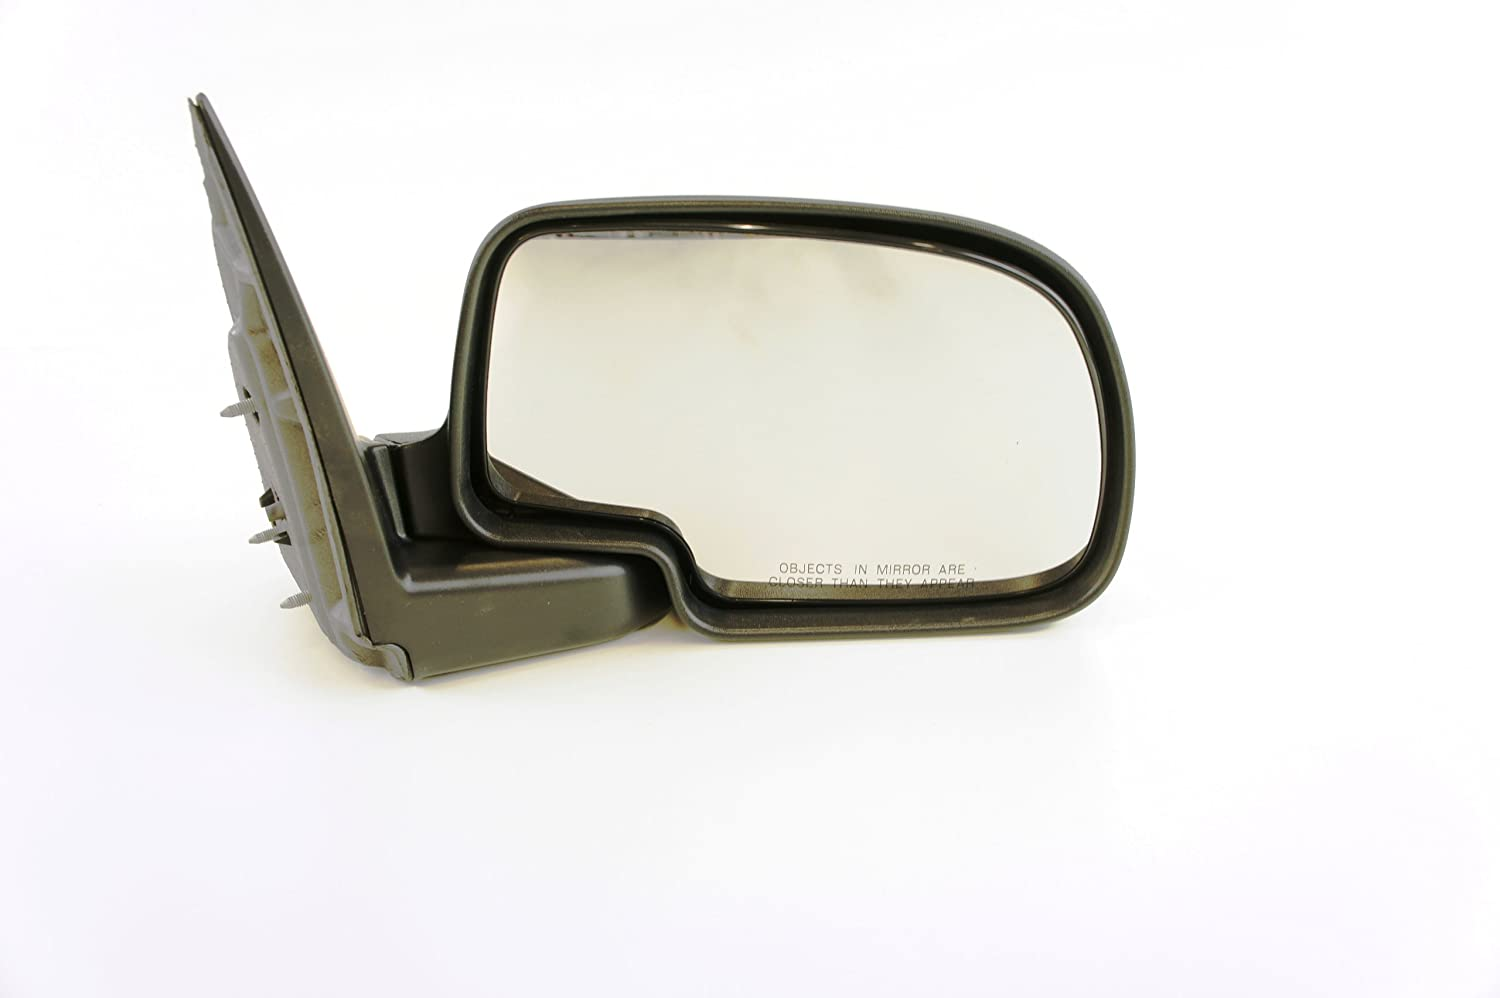 Genuine GM Parts 20862099 Passenger Side Mirror Outside Rear View Genuine General Motors Parts